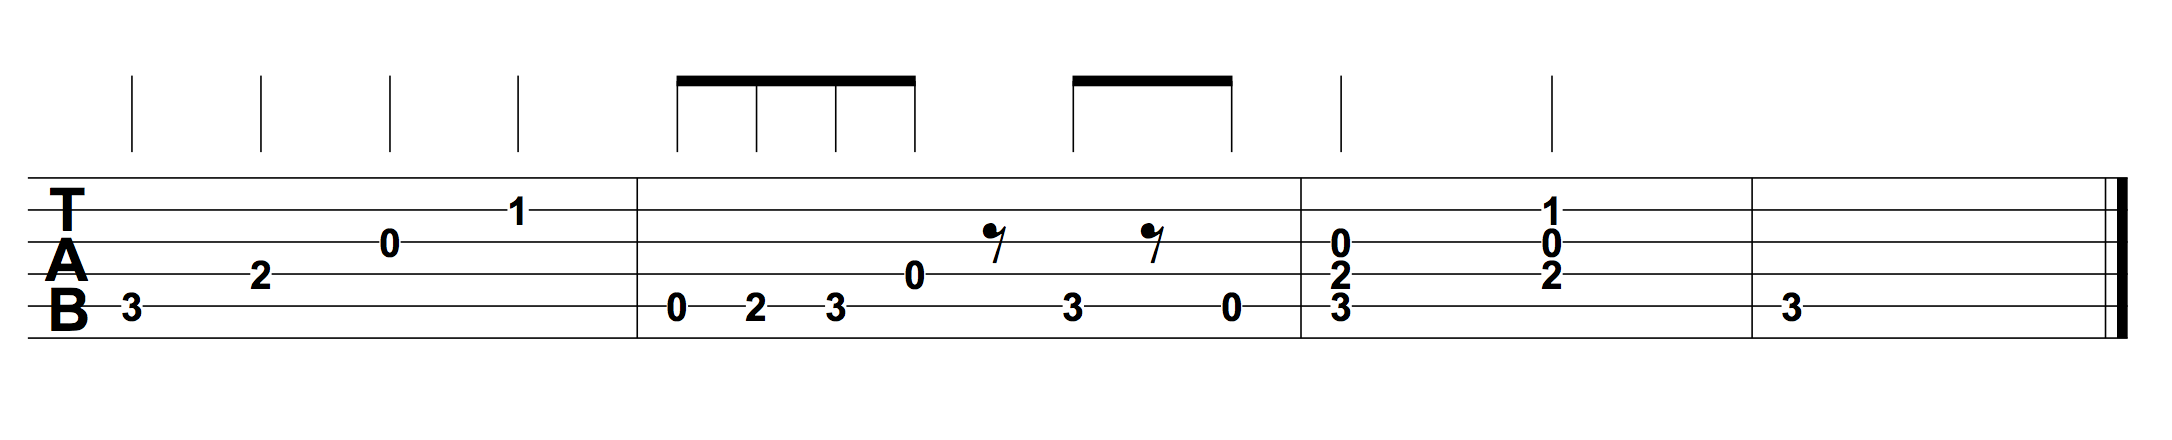 How to read guitar tab hub guitar the stems above the fret numbers along with the rests help show accurate rhythmic values without this information the rhythm would not be clearly hexwebz Gallery